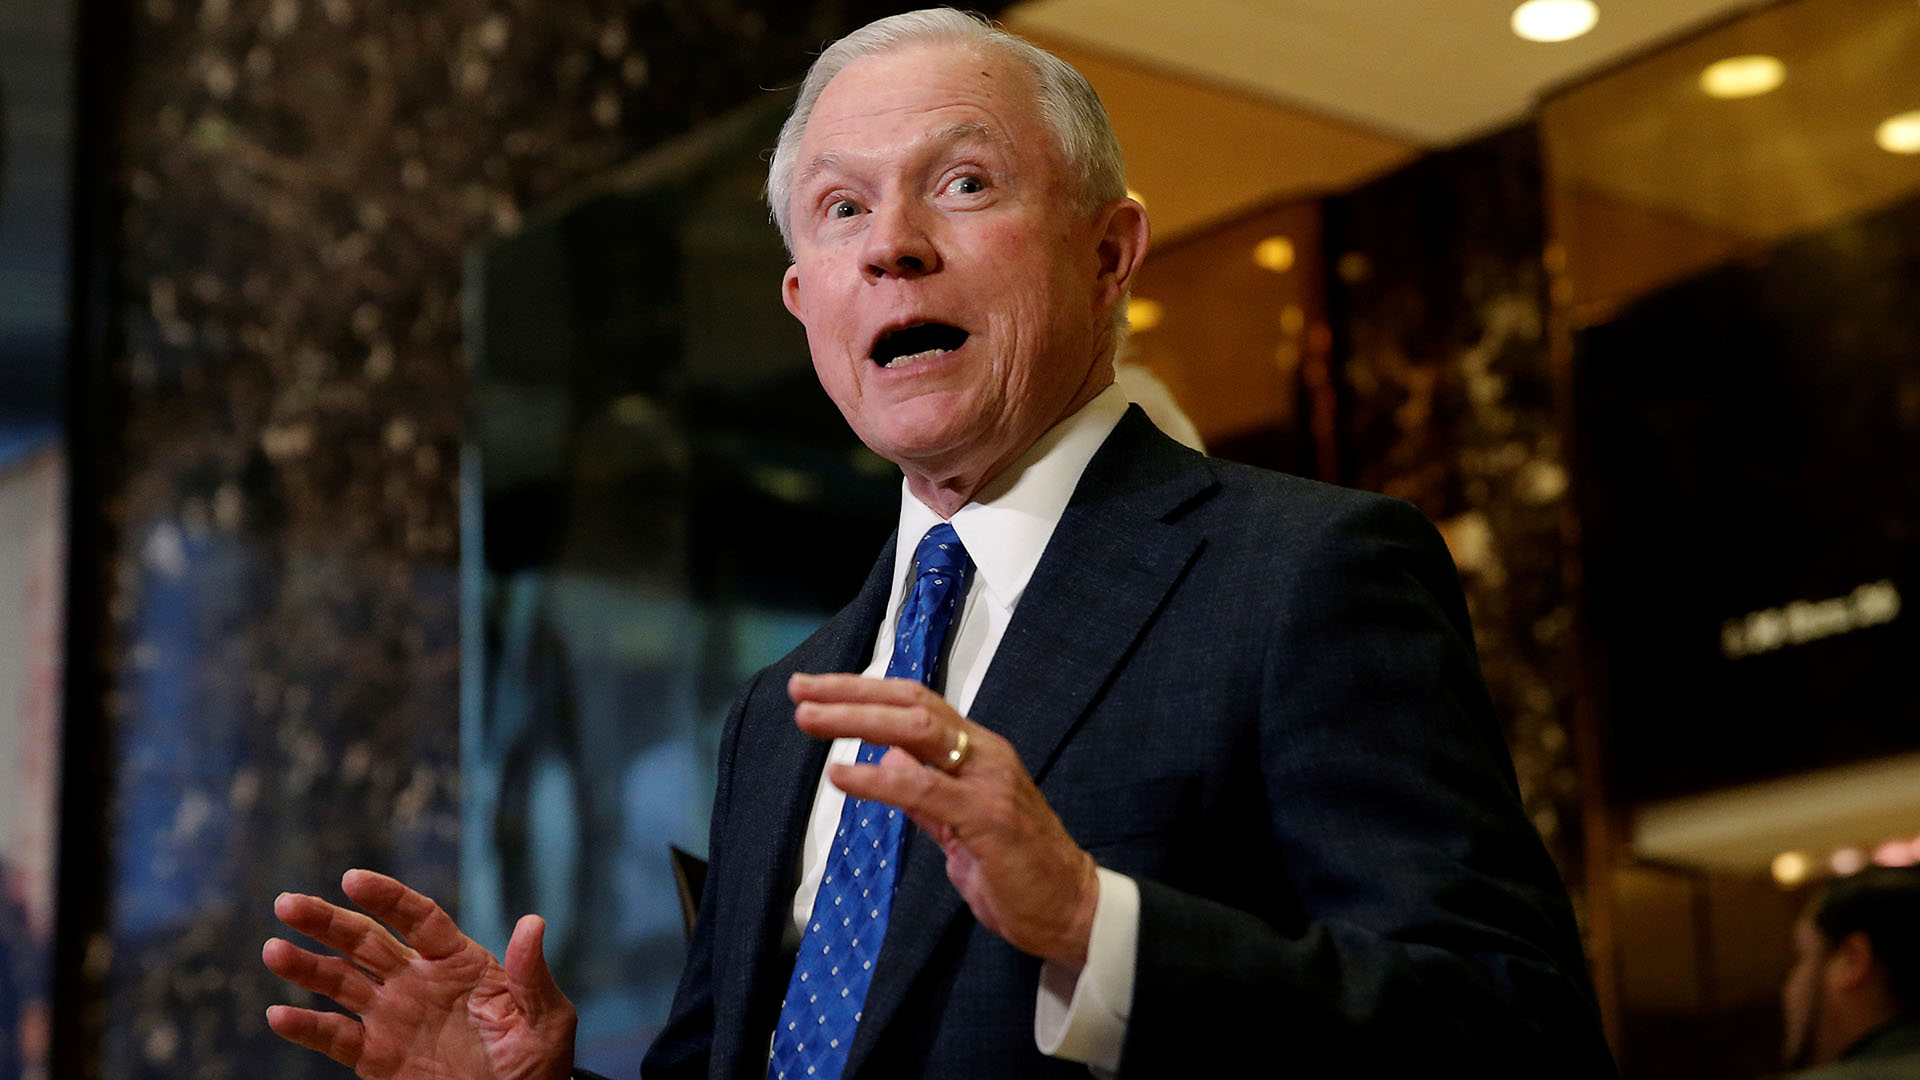 Sessions, Trump AG pick, could influence immigration policy